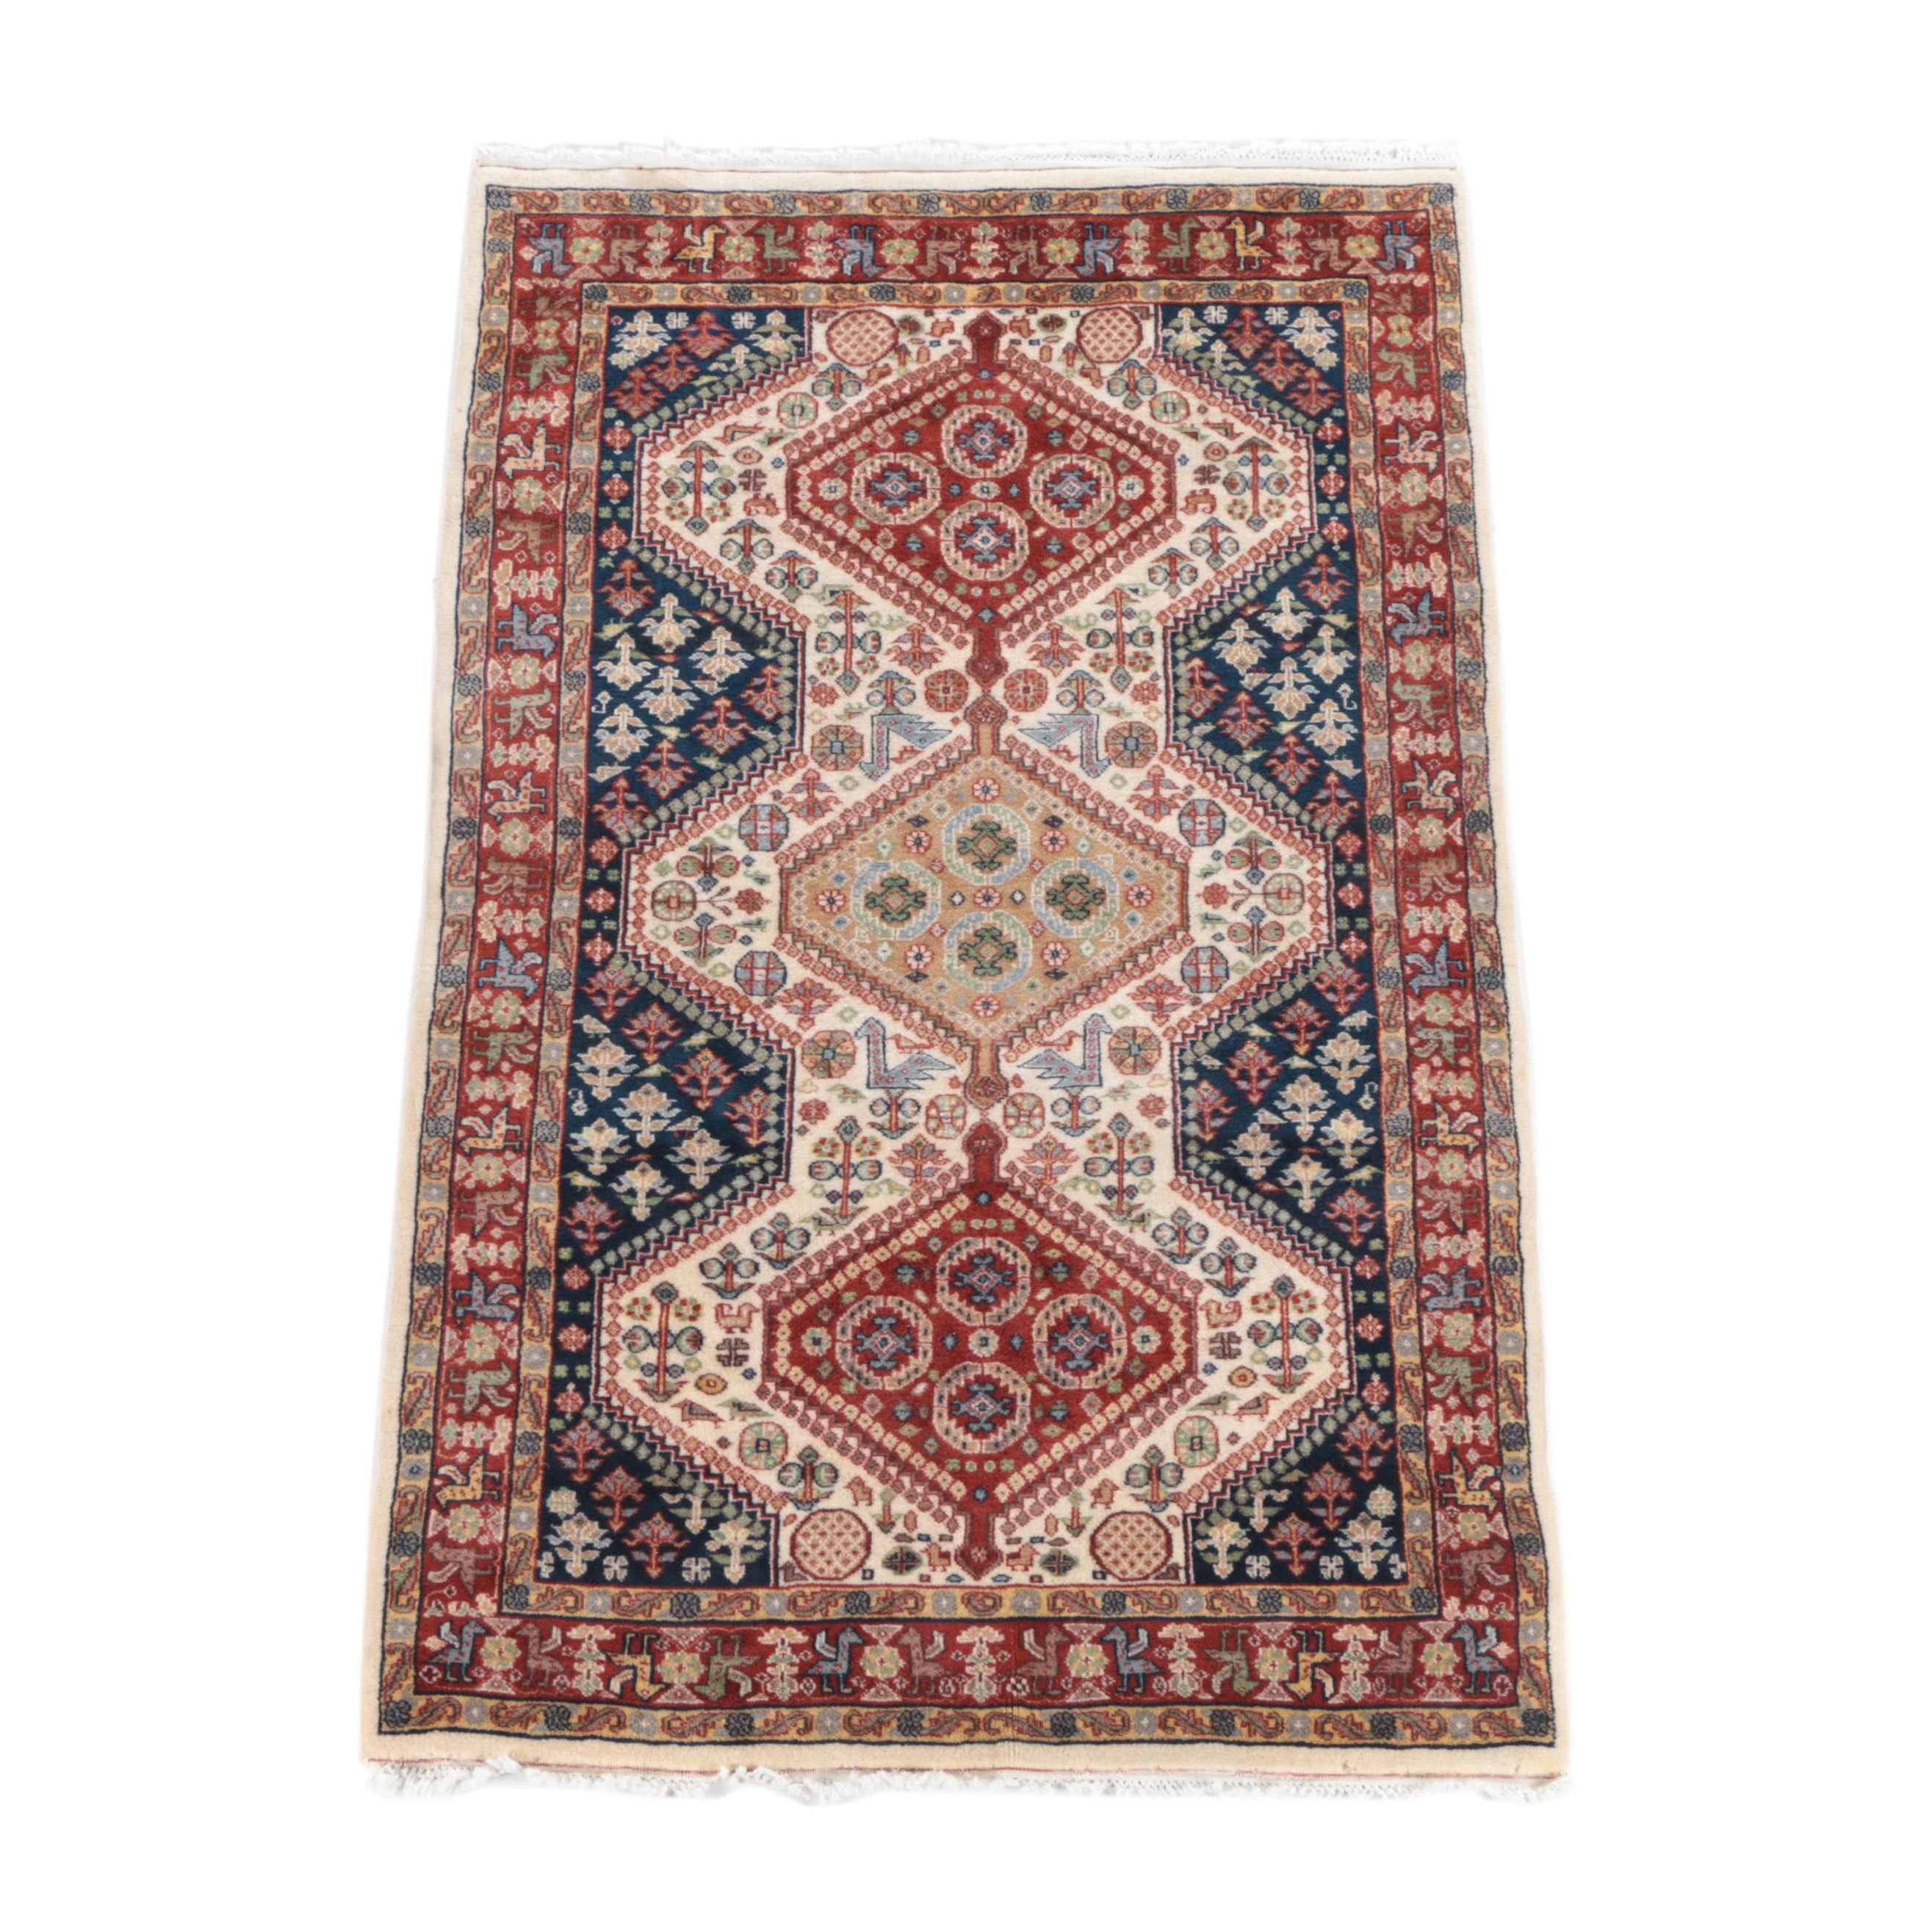 Hand-Knotted Pakistani Bokhara-Style Area Rug